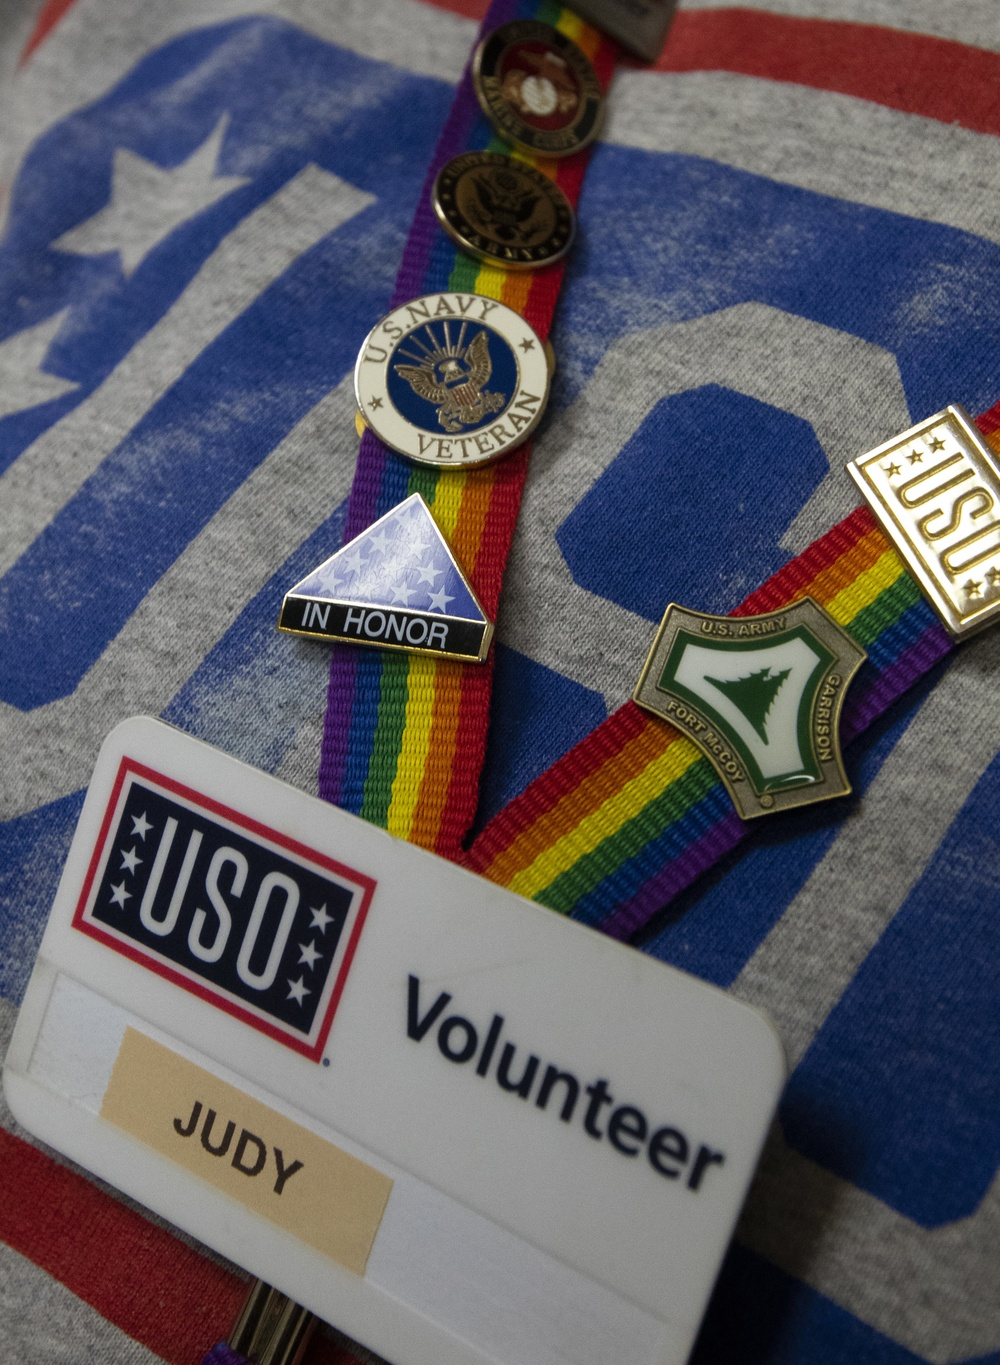 A Navy veteran connects with Soldiers at USO